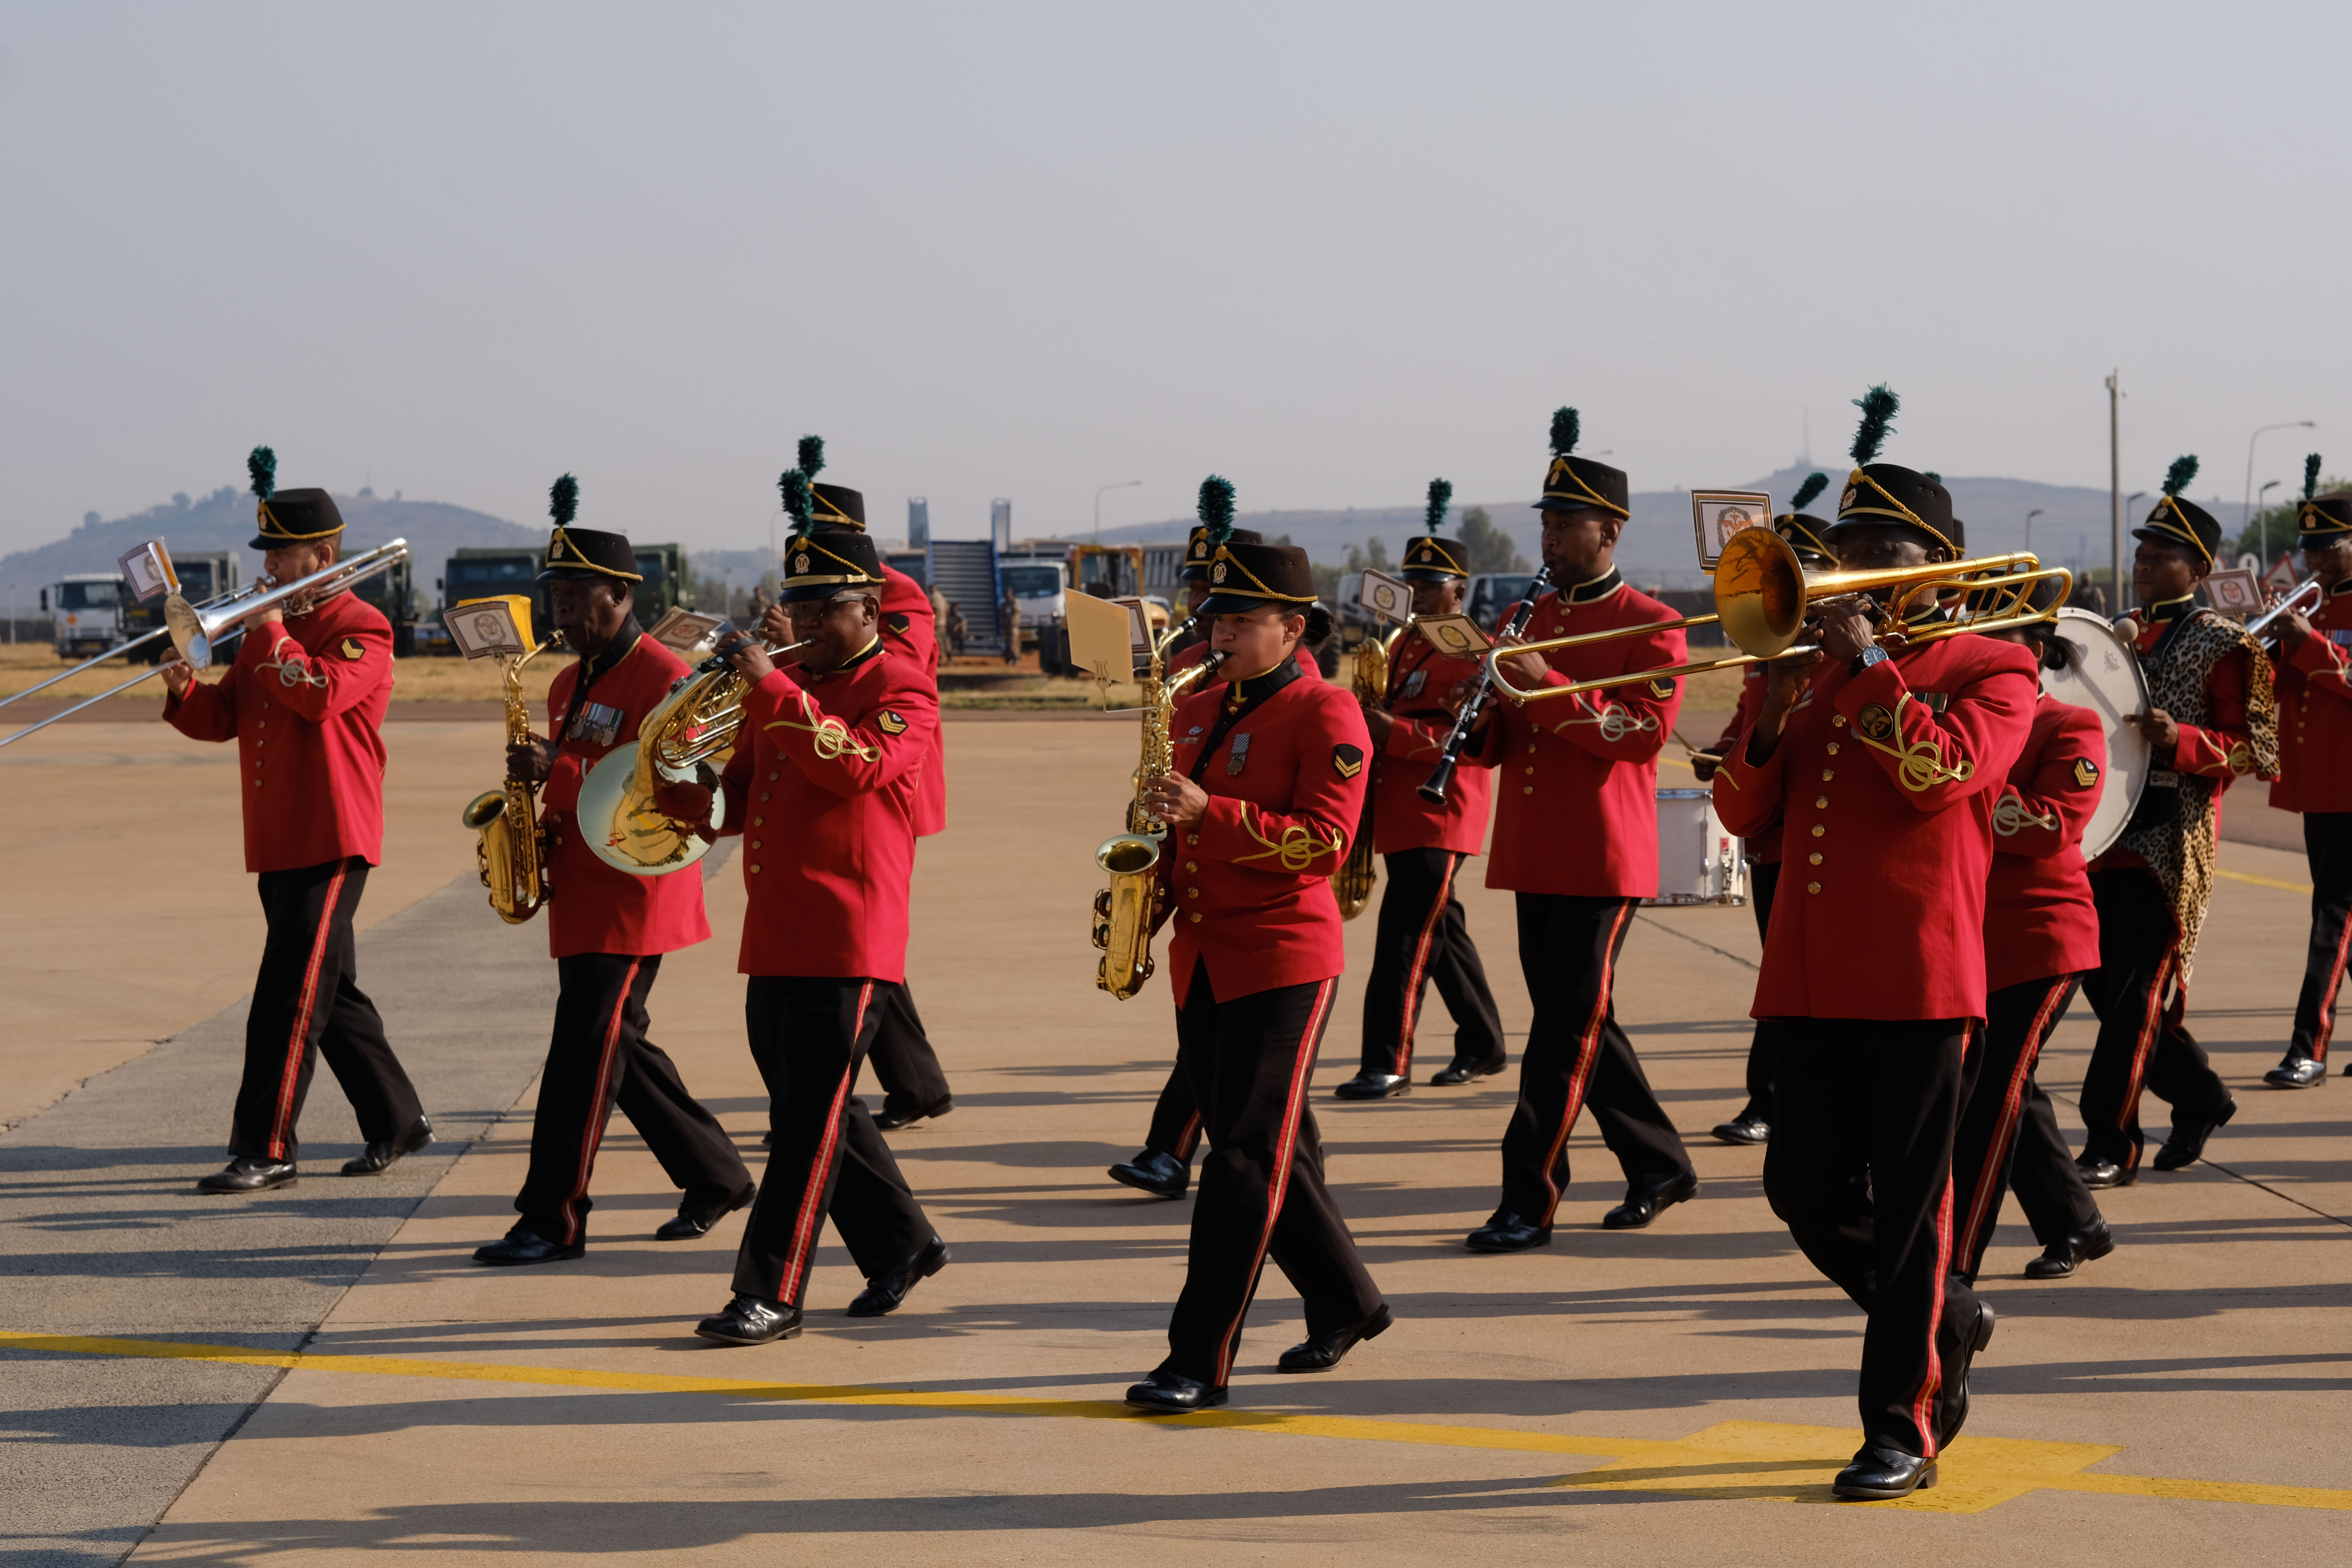 Members of the South African Army Band march during the African Aerospace and Defense Exhibition 18 opening ceremony, September 19, 2018, Waterkloof Air Force Base, South Africa.This tradeshow will increase our understanding of each other's capabilities and proficiencies, enhancing our ability to operate together. (US Army Photo by SSG Jeffery Sandstrum)